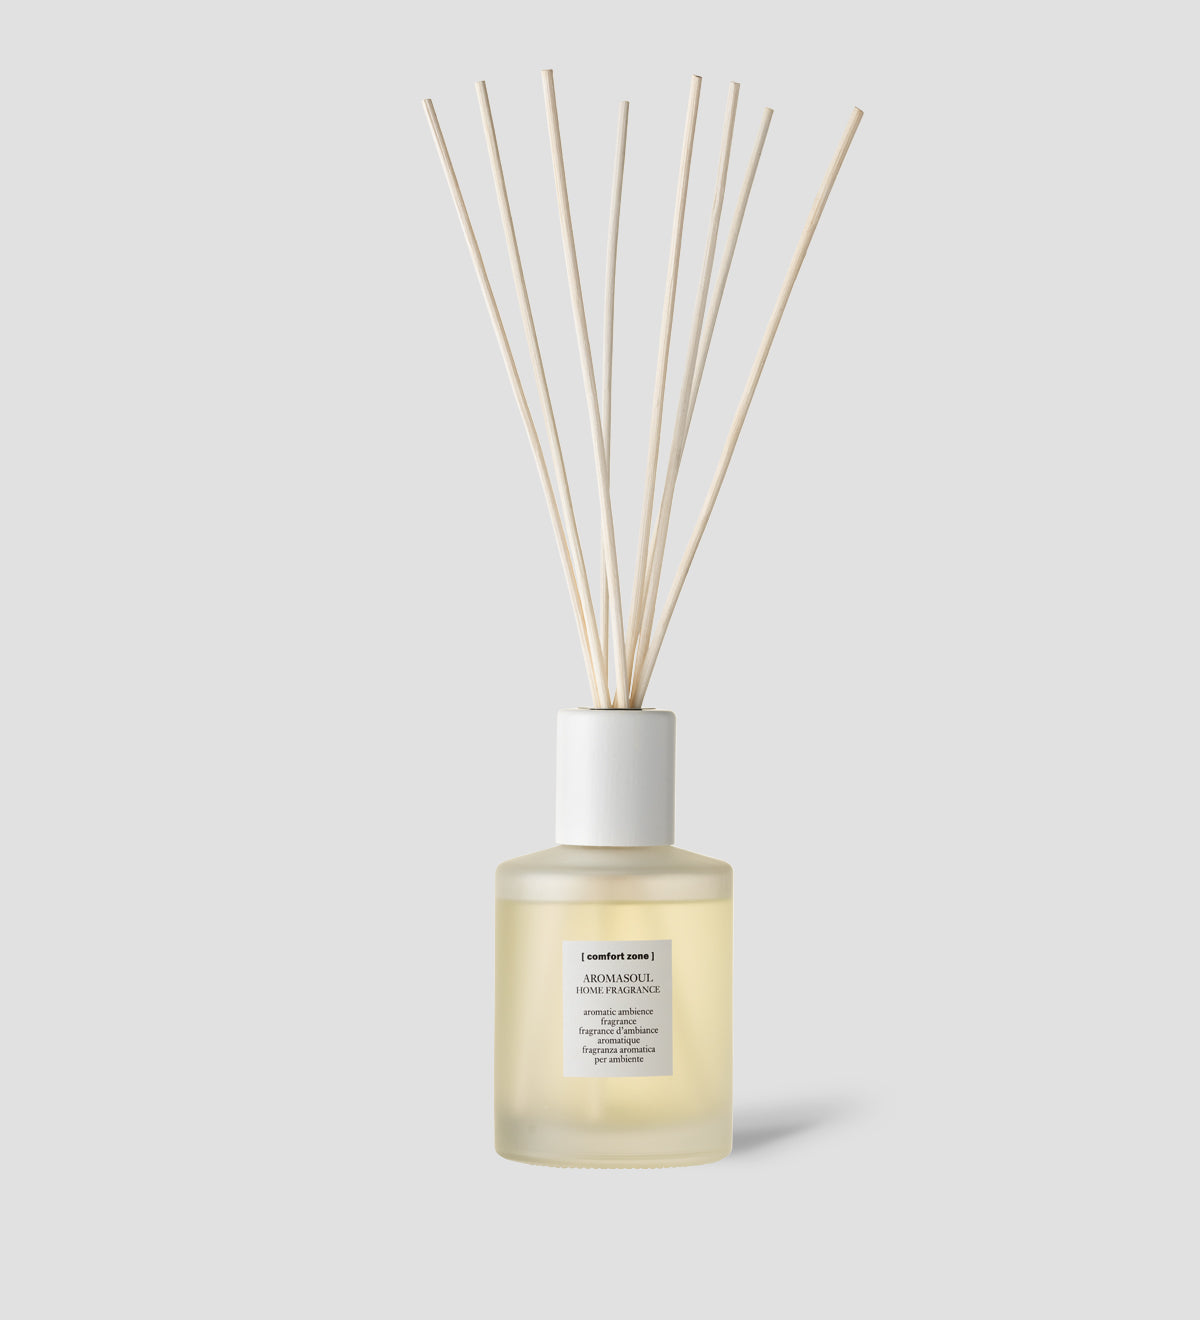 Comfort Zone: AROMASOUL HOME FRAGRANCE Room fragrance diffuser-1